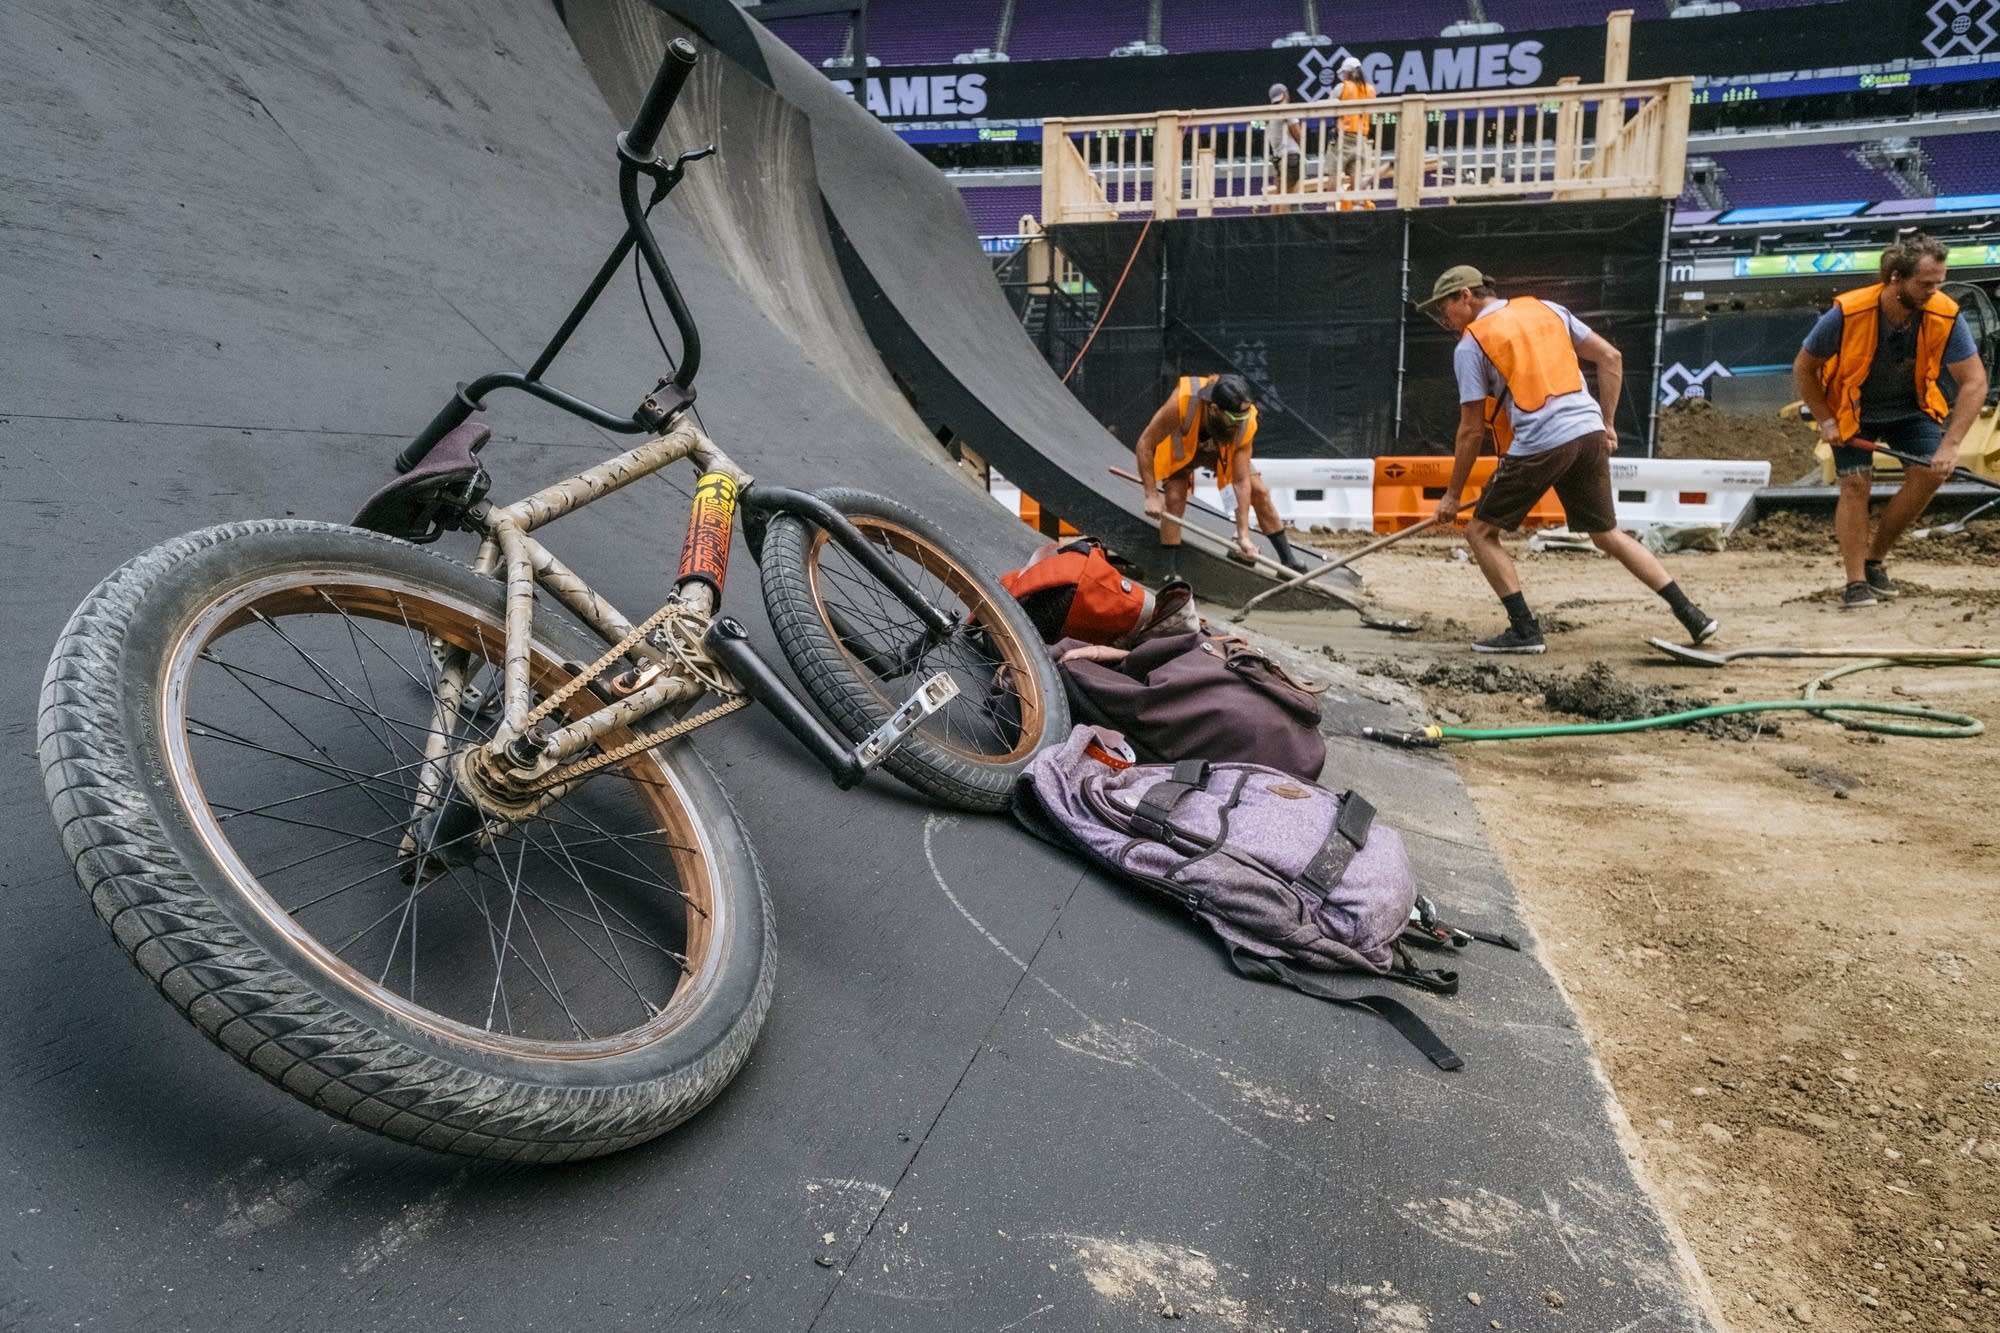 A BMX bike leans on a quarter pipe.